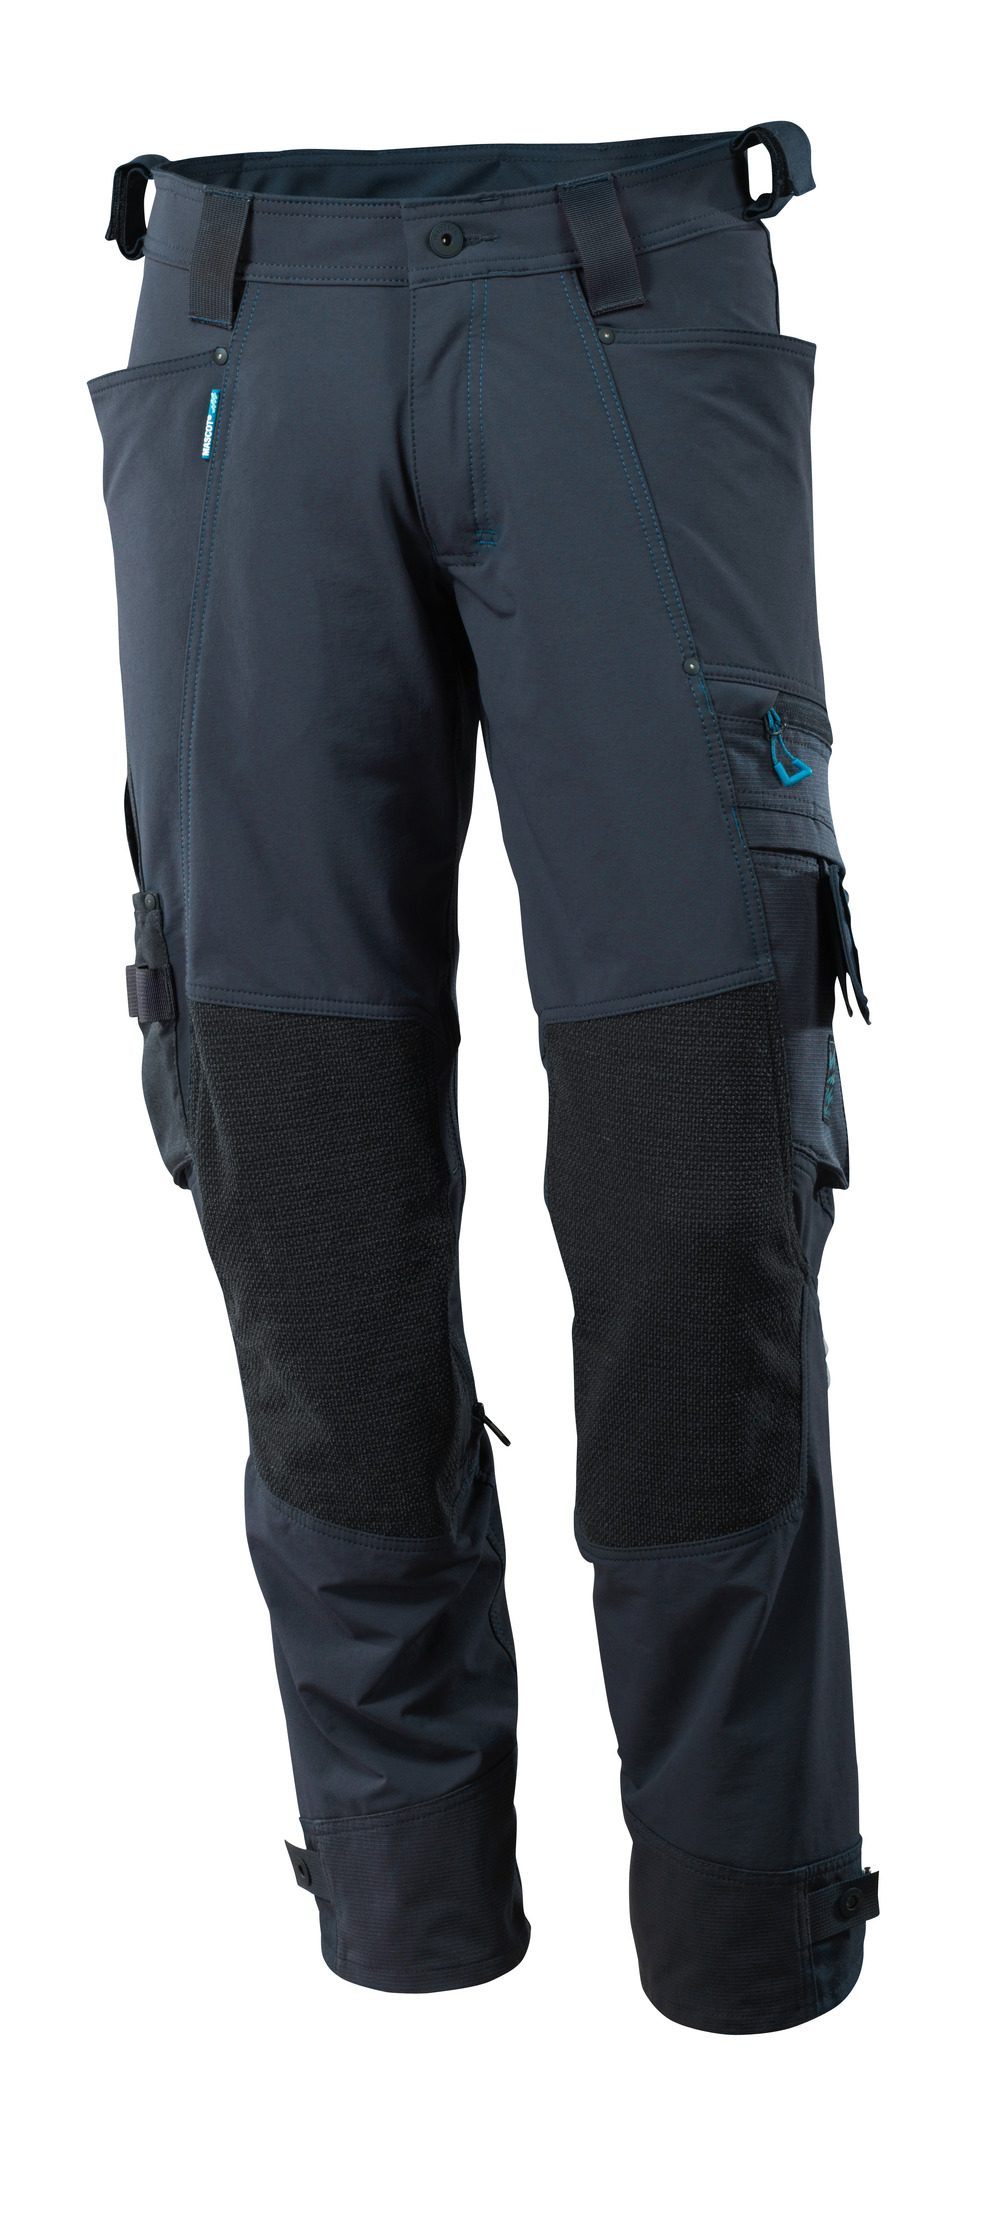 MASCOT Advanced Pants with Dyneema Kneepad Pockets